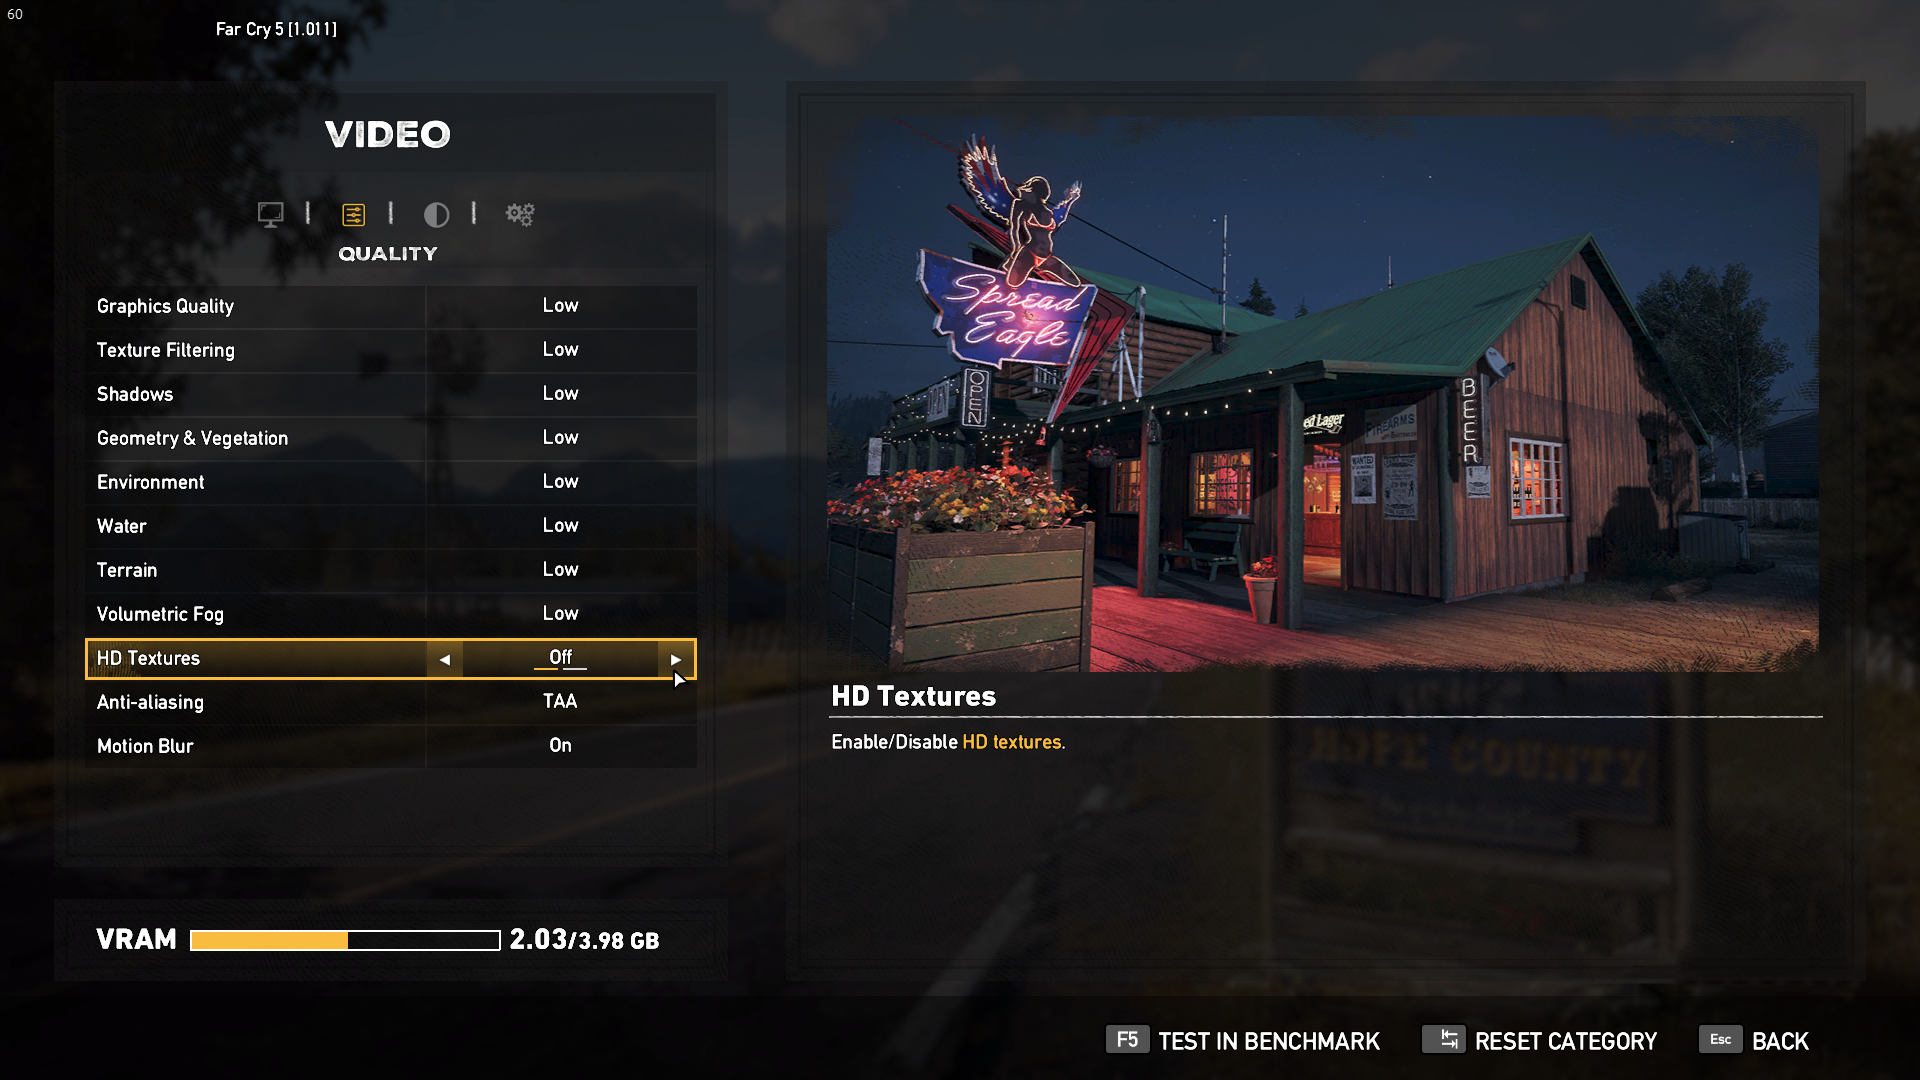 Video options menu in Far Cry 5